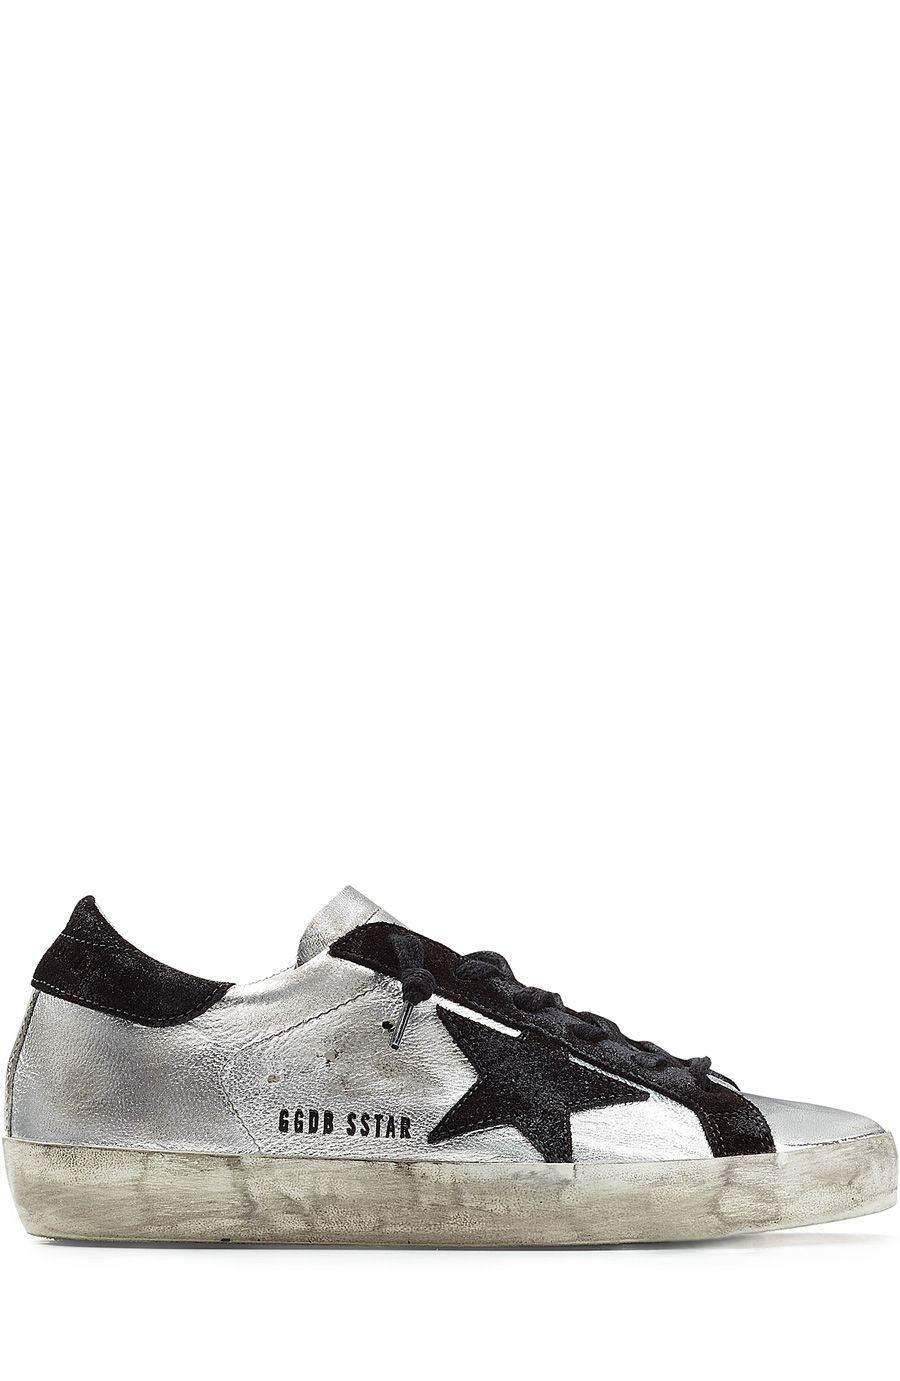 GOLDEN GOOSE Super Star Leather Sneakers.  goldengoose  shoes  sneakers da32c50e01